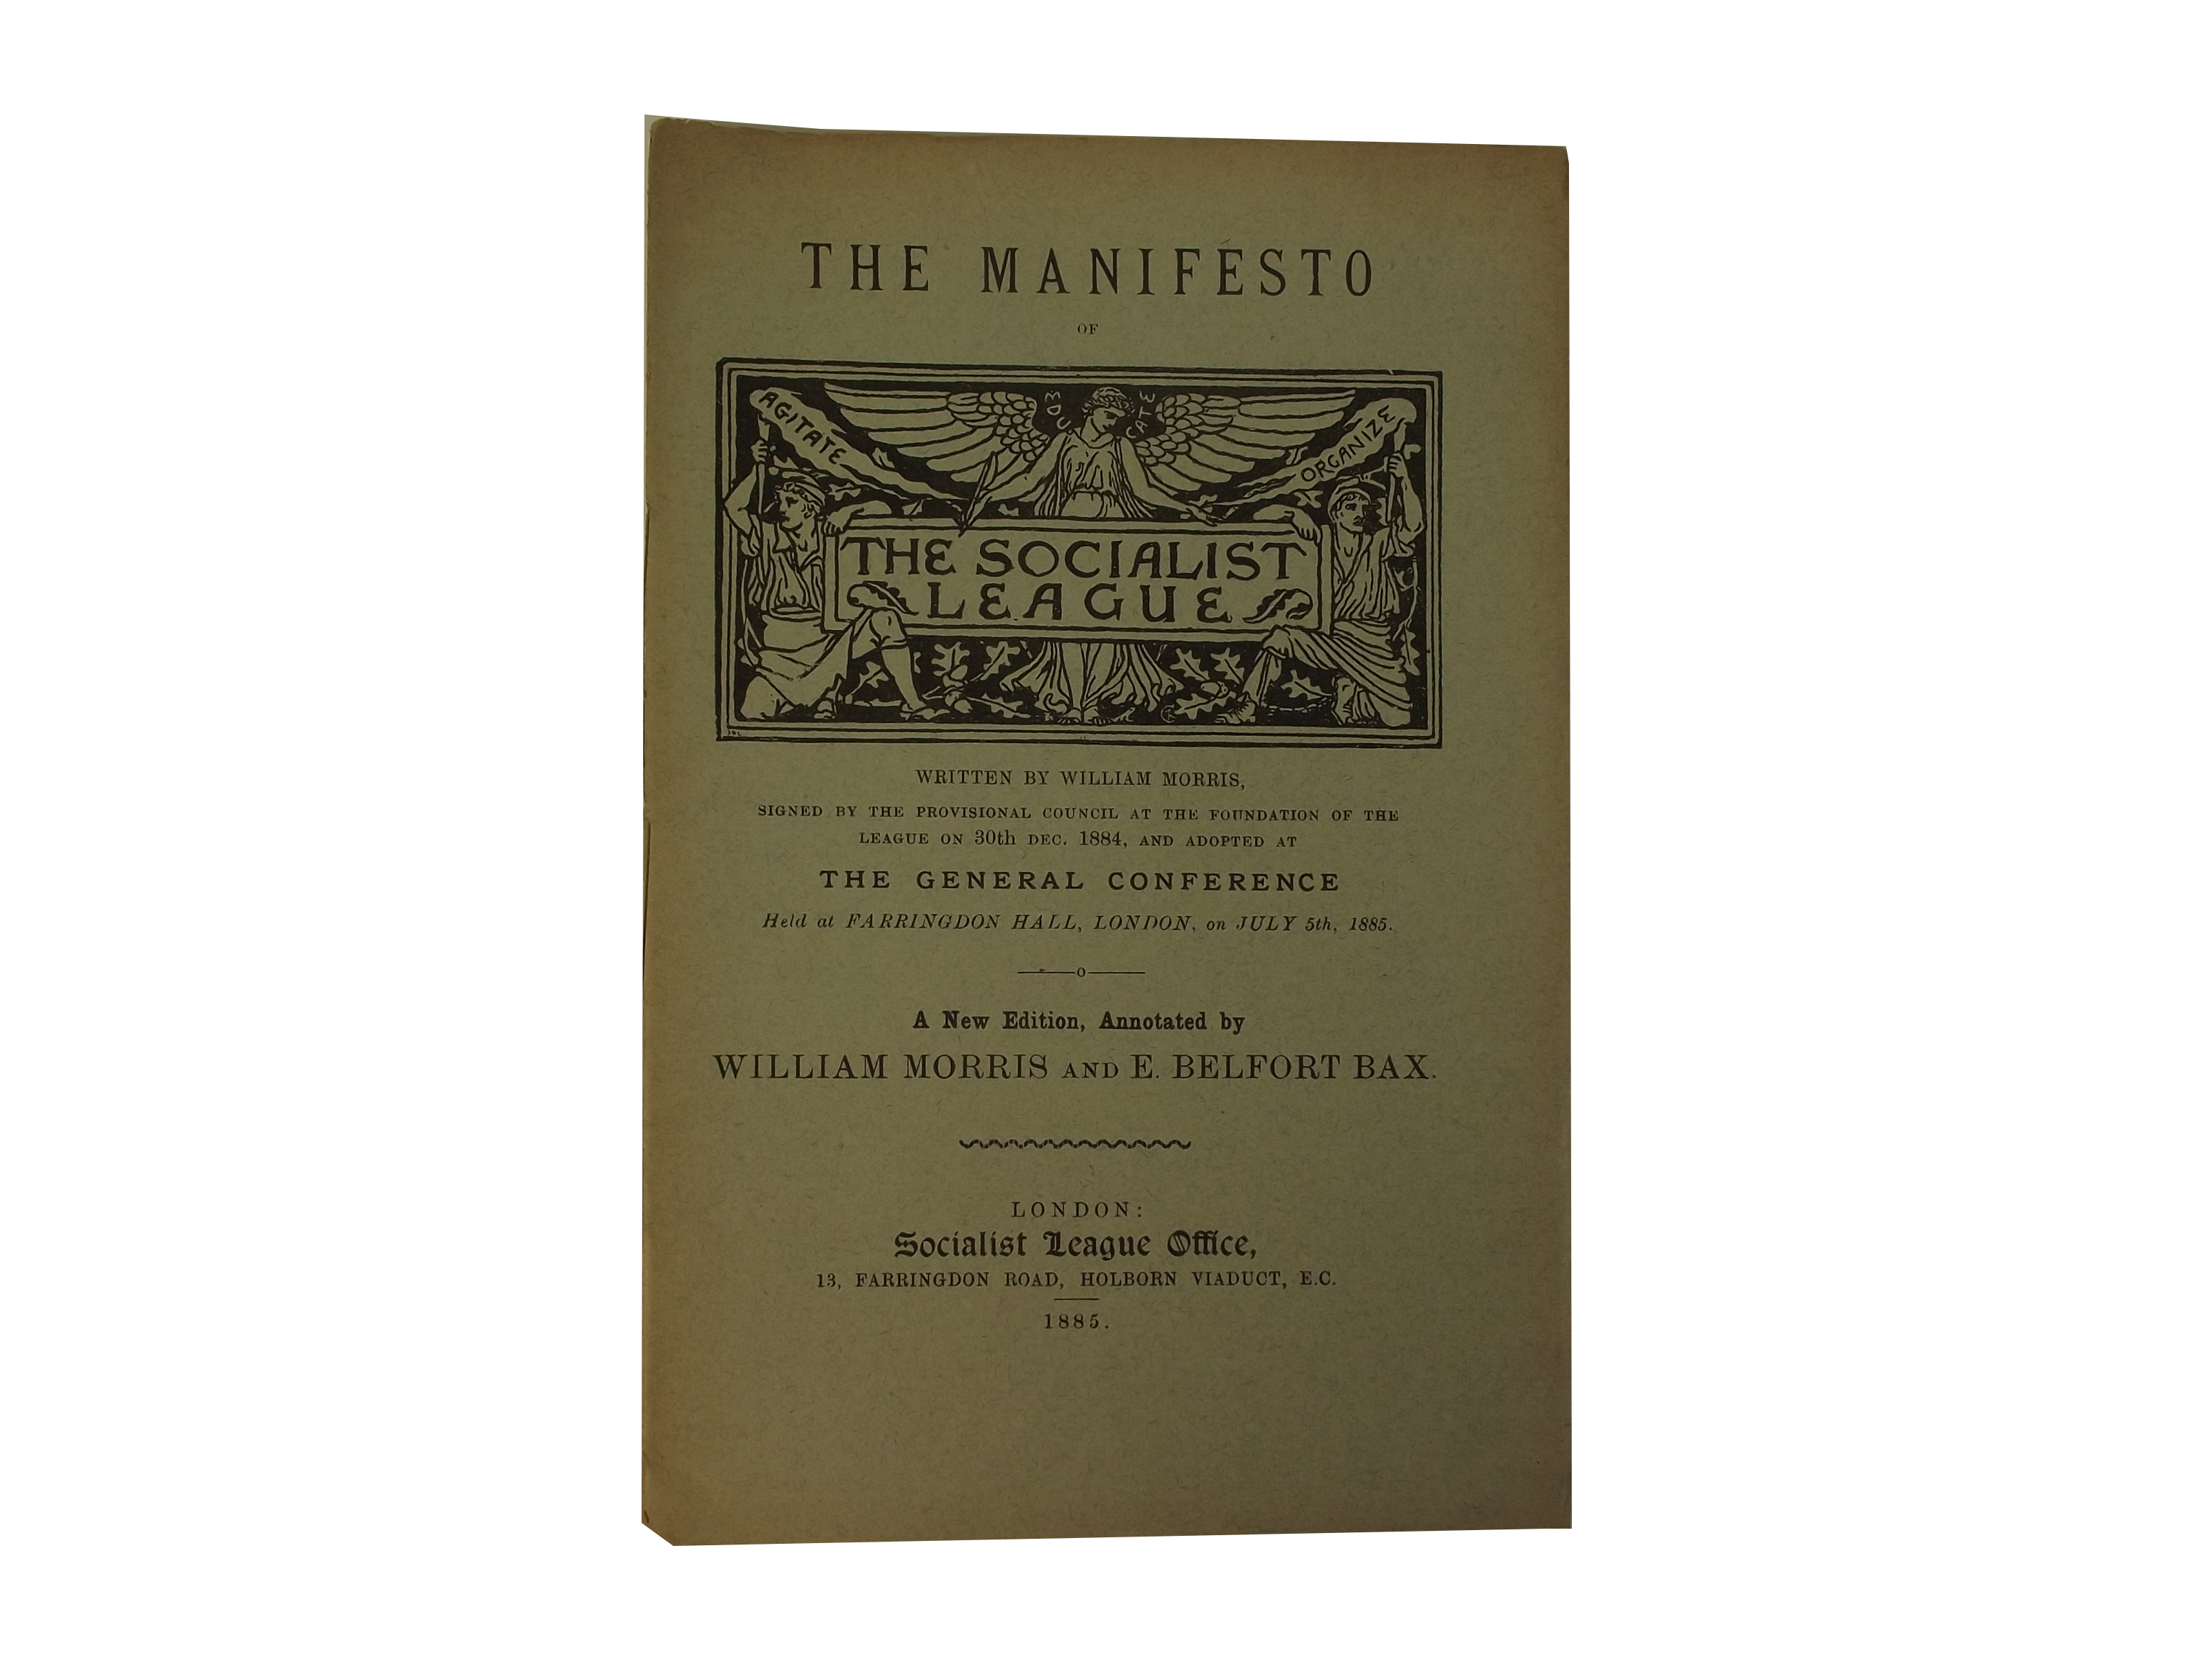 Manifesto of the Socialist League